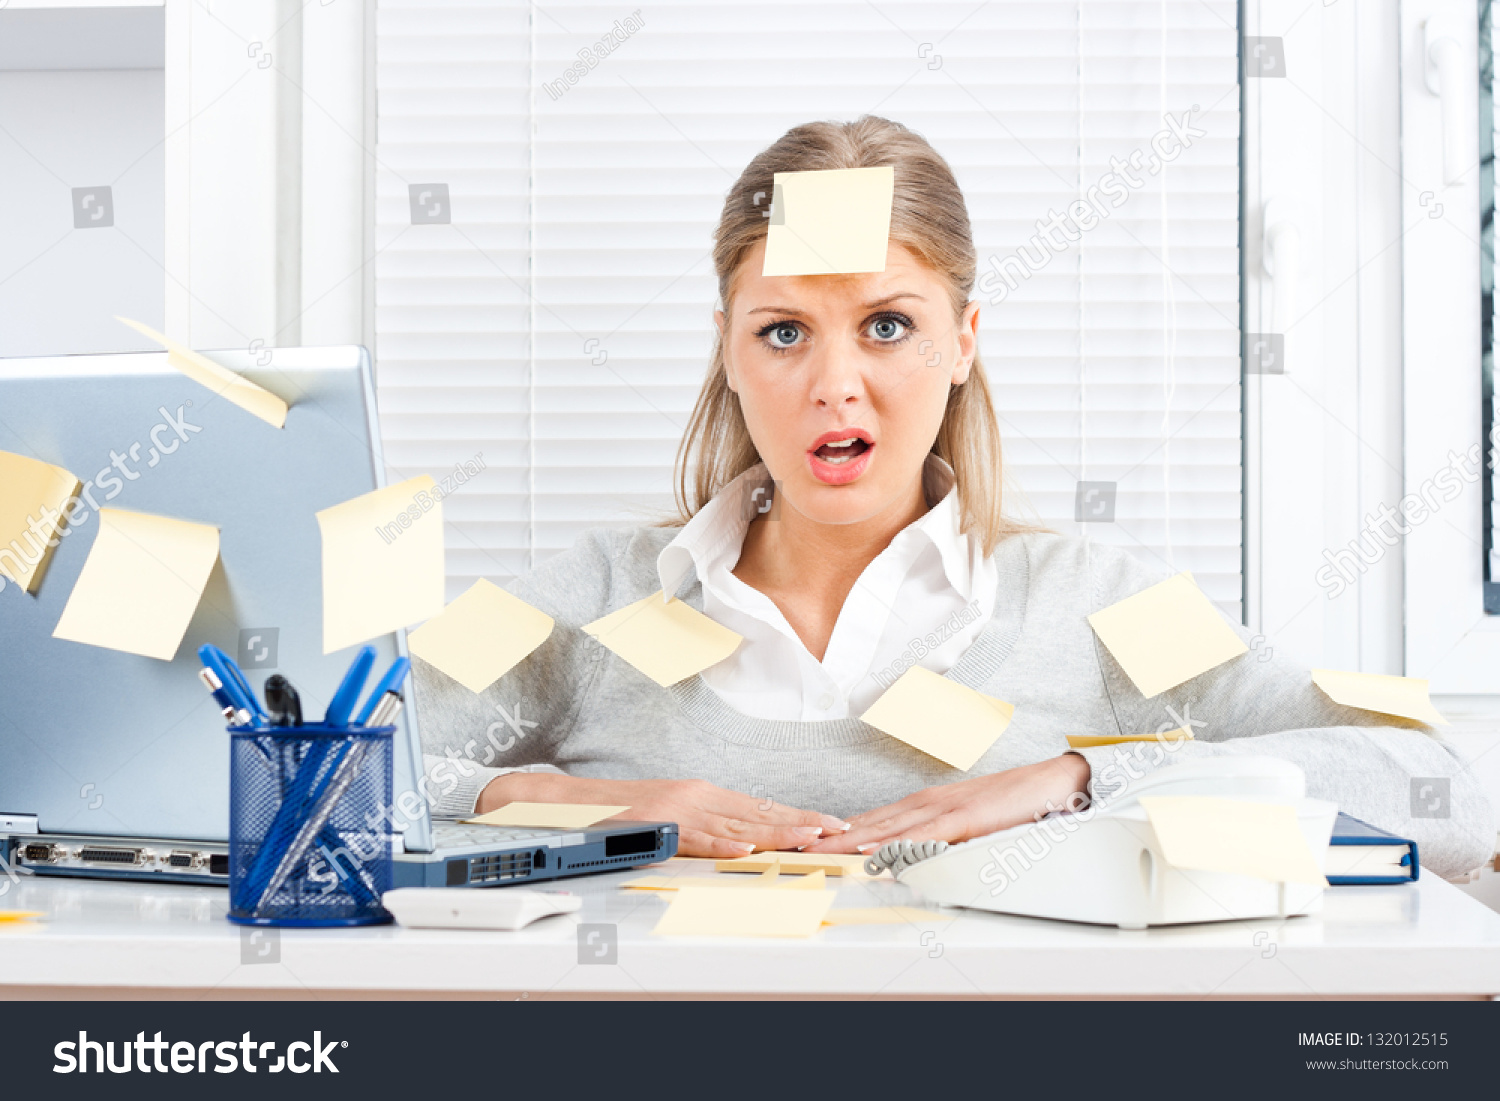 young businessw much work dooverworked stock photo  young businessw too much work to do overworked